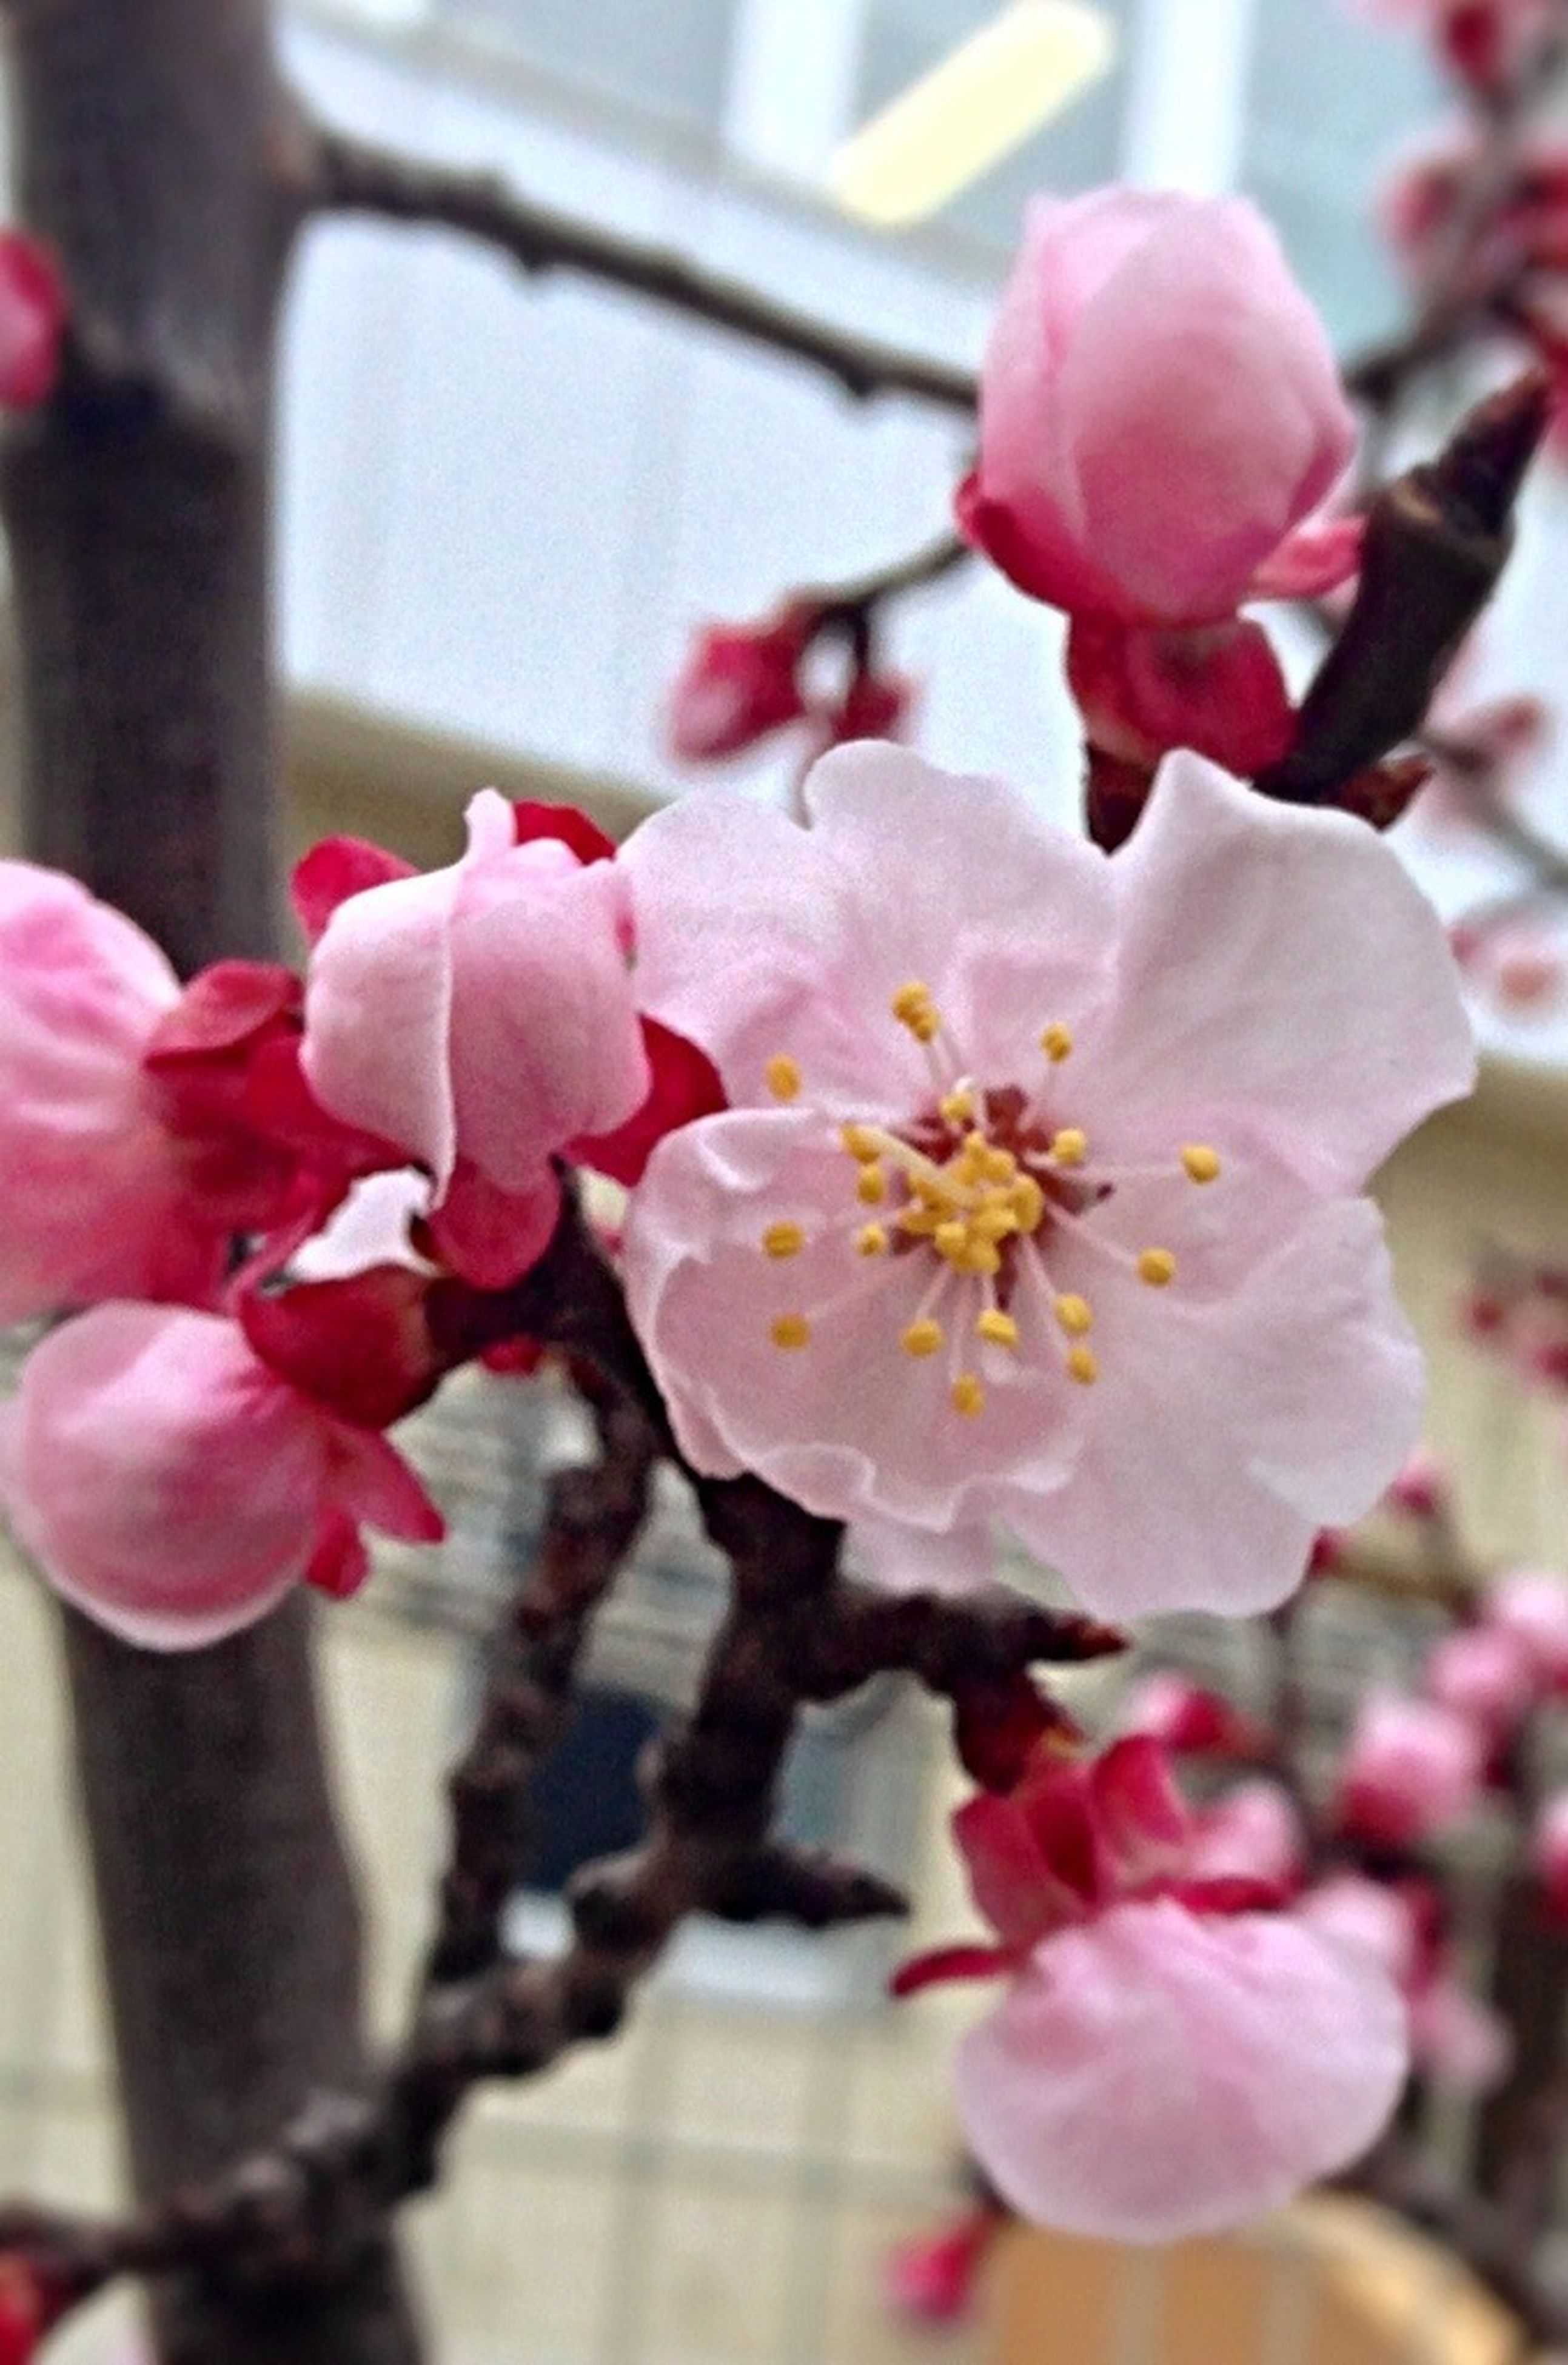 flower, freshness, petal, fragility, flower head, focus on foreground, beauty in nature, pink color, close-up, growth, nature, blossom, cherry blossom, blooming, in bloom, branch, springtime, selective focus, day, twig